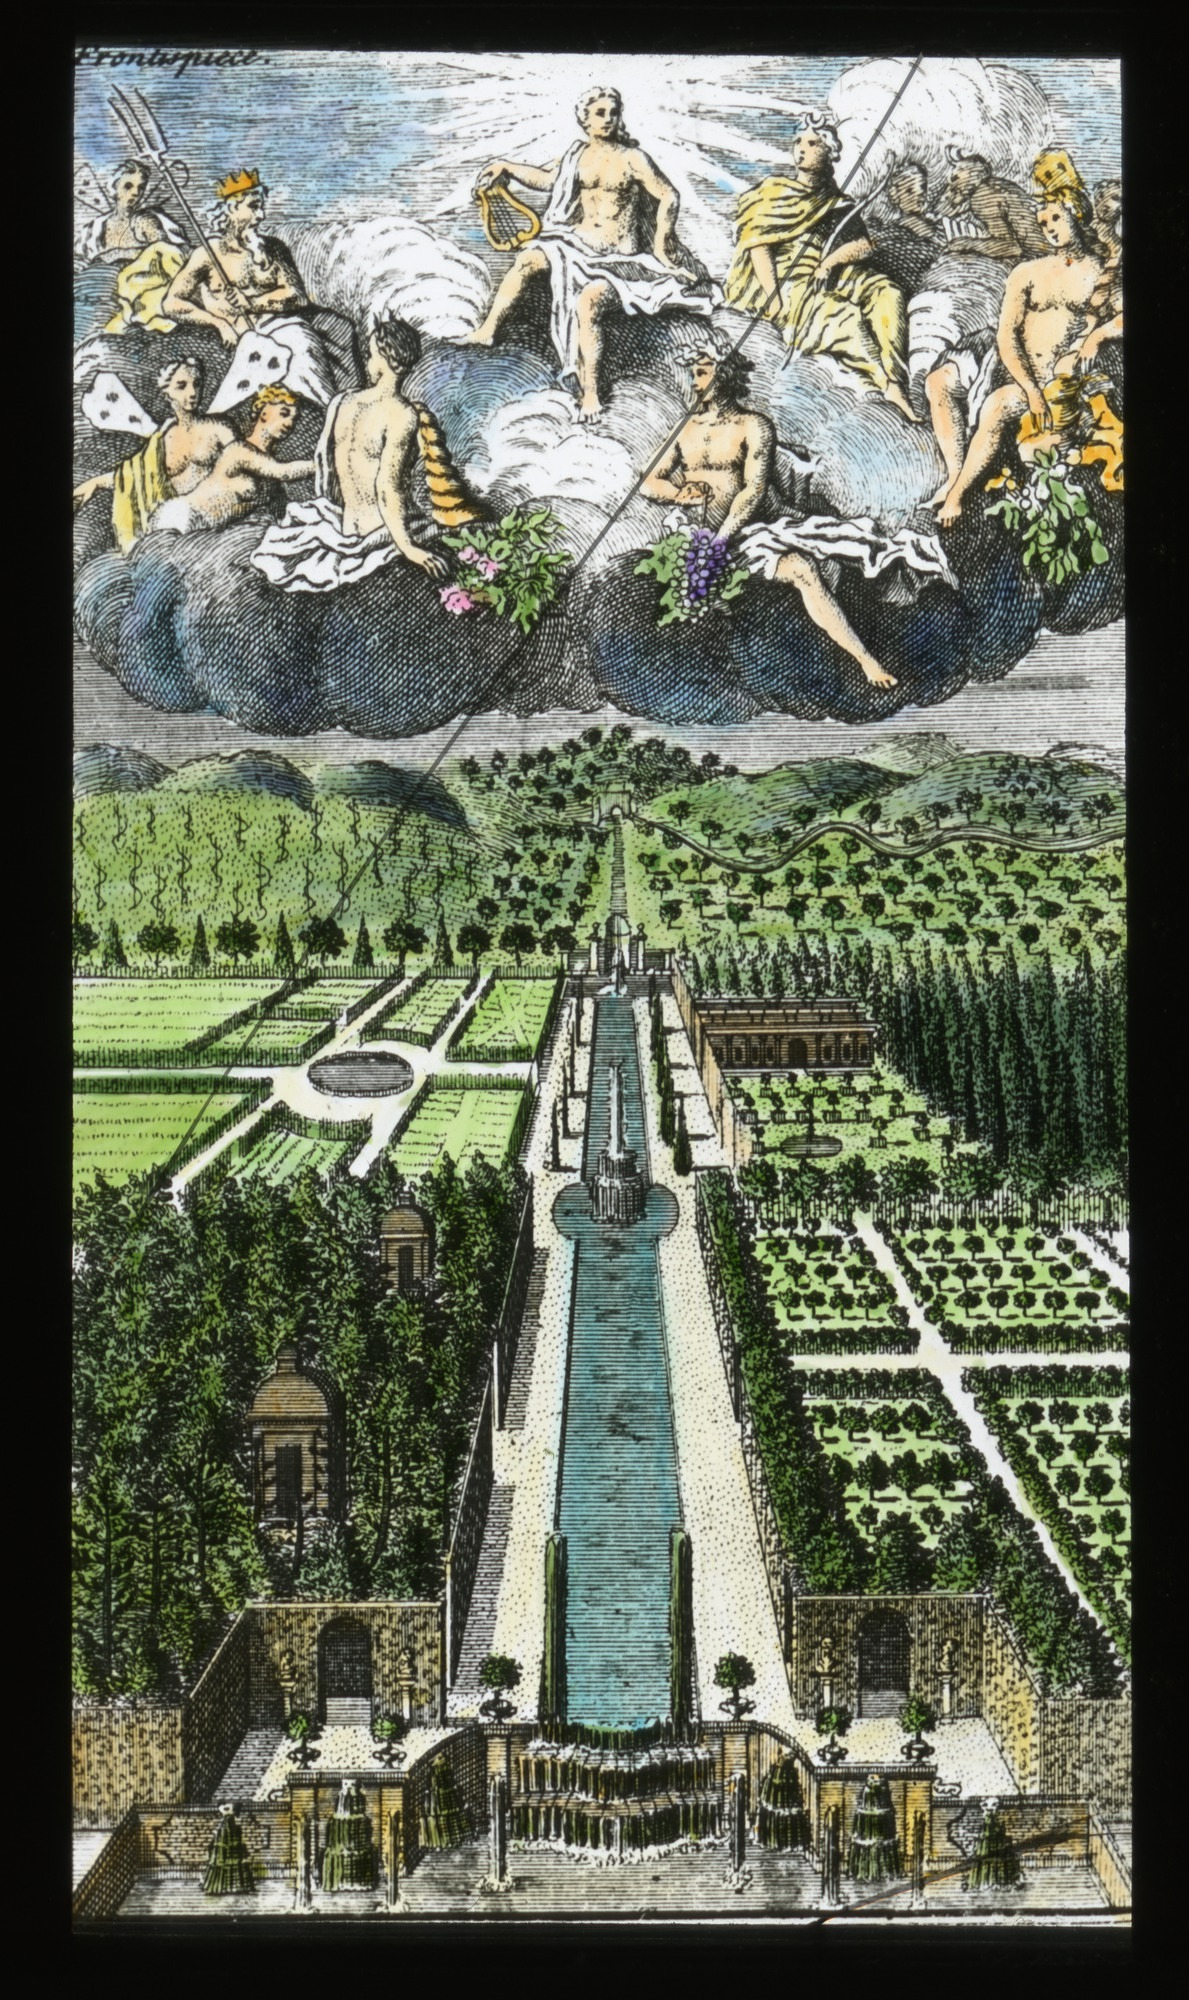 Frontispiece from Philip Miller, The Gardener's Dictionary (1731)